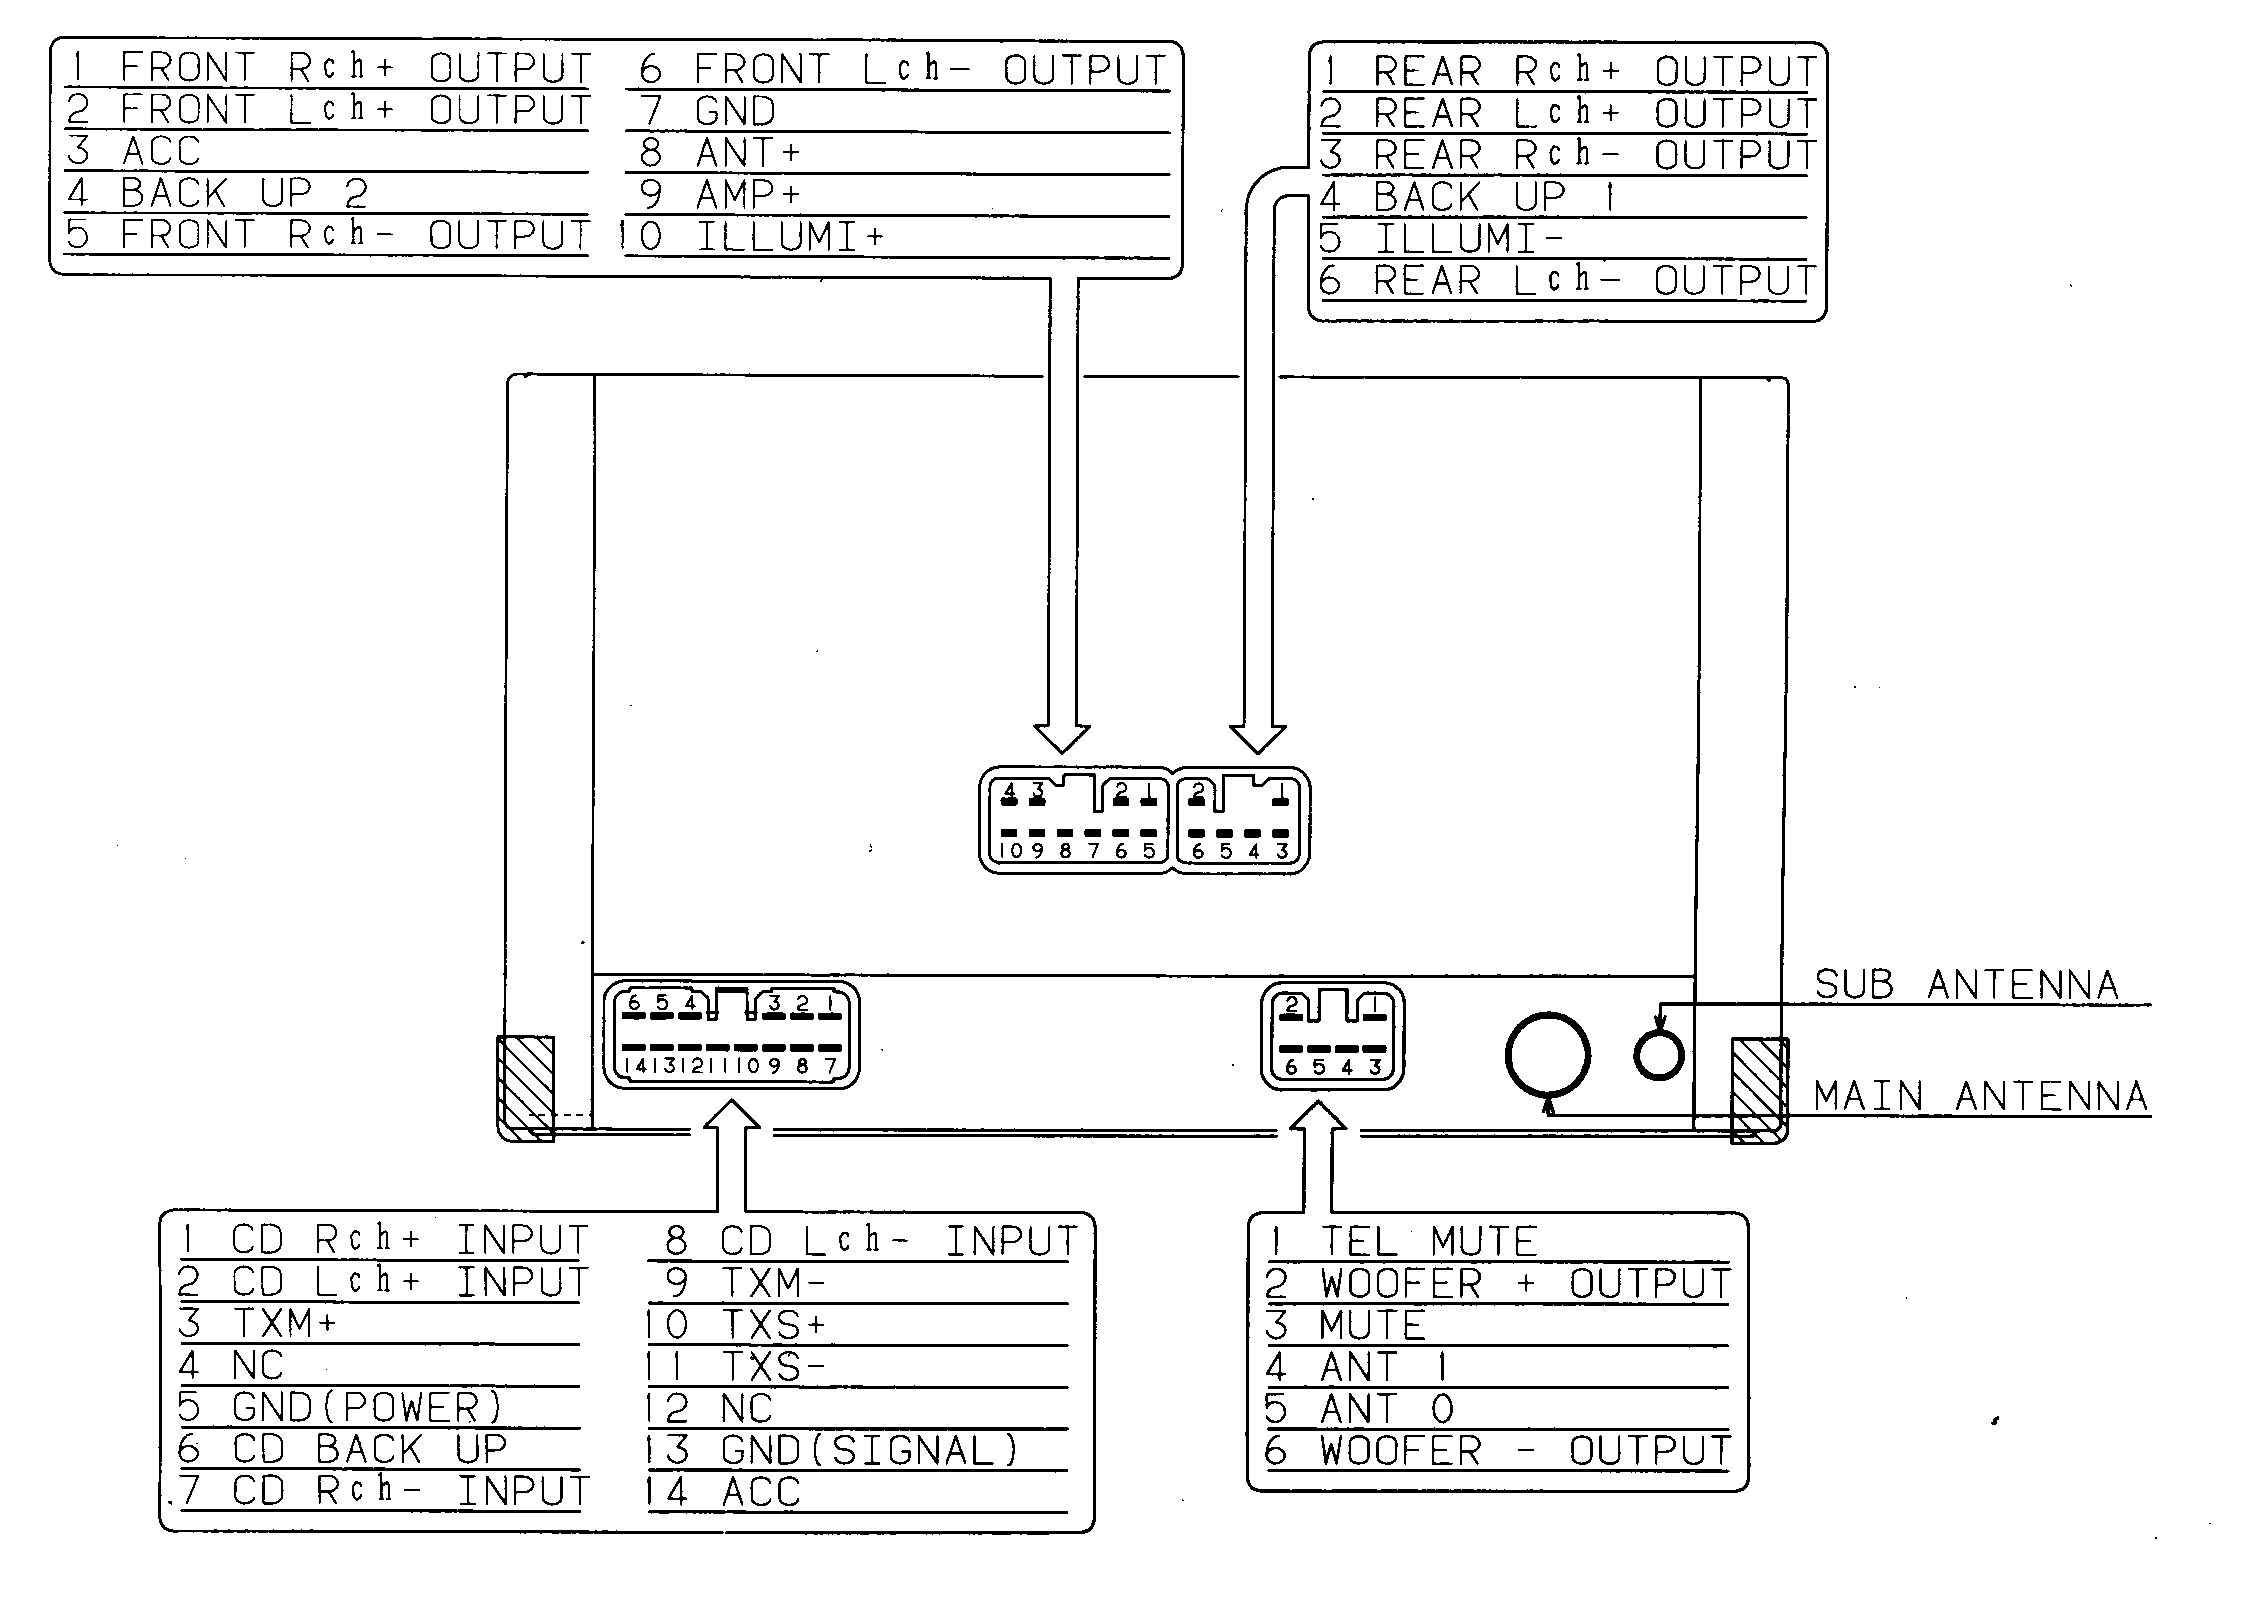 98 02 Subaru Radio Wiring Harness Worksheet And Diagram For 1997 Impreza 2013 Lexus Layout Diagrams U2022 Rh Laurafinlay Co Uk 1996 Stereo